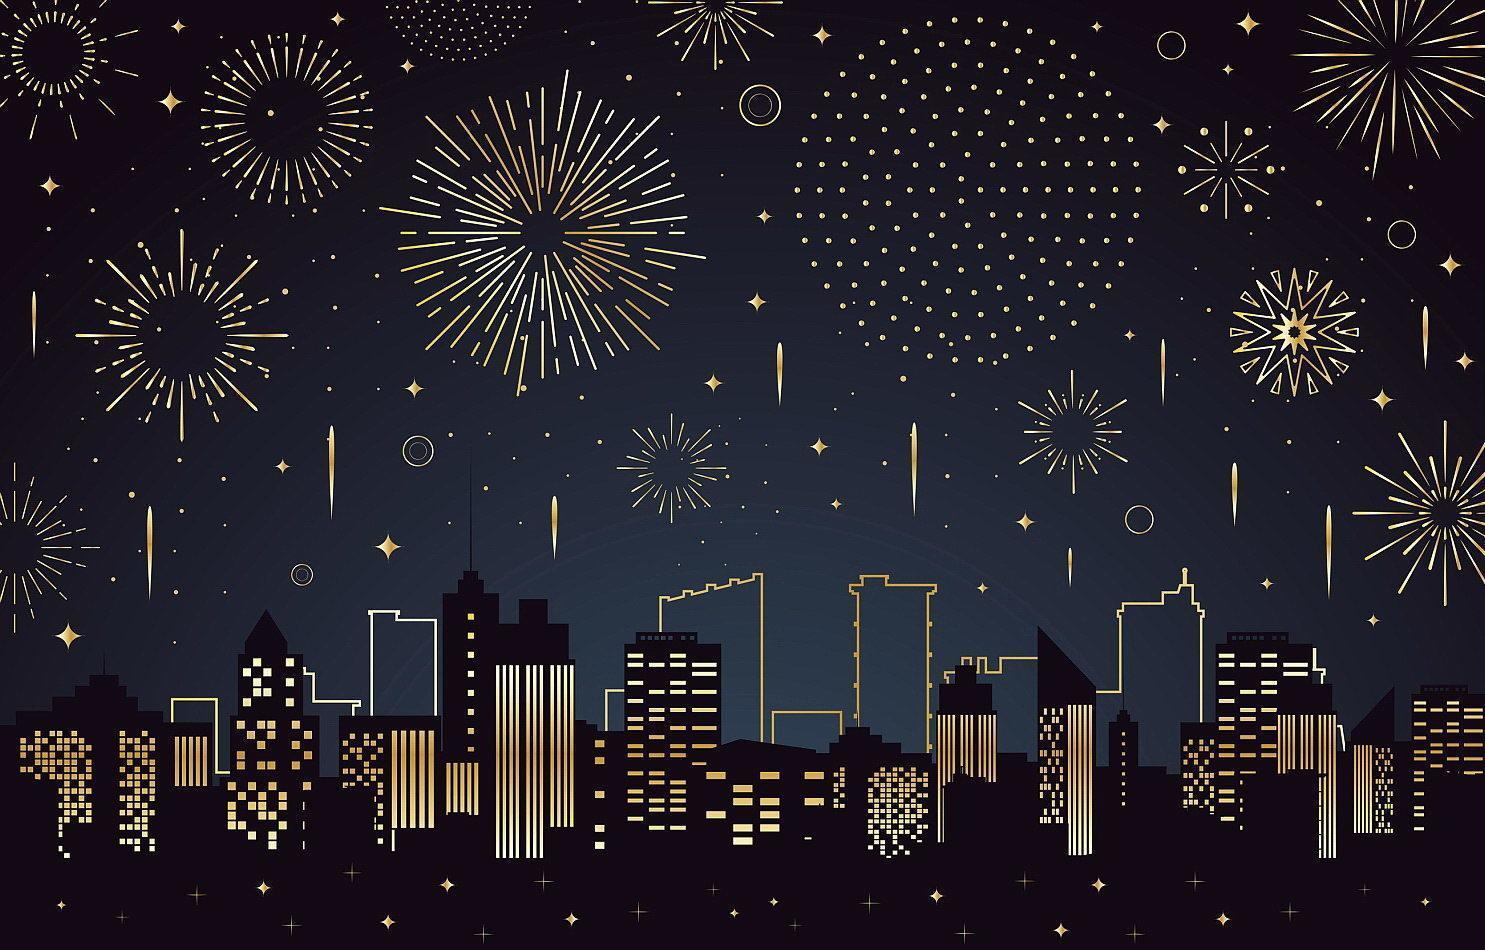 Scenery of Fireworks Above a City Buildings Silhouette vector